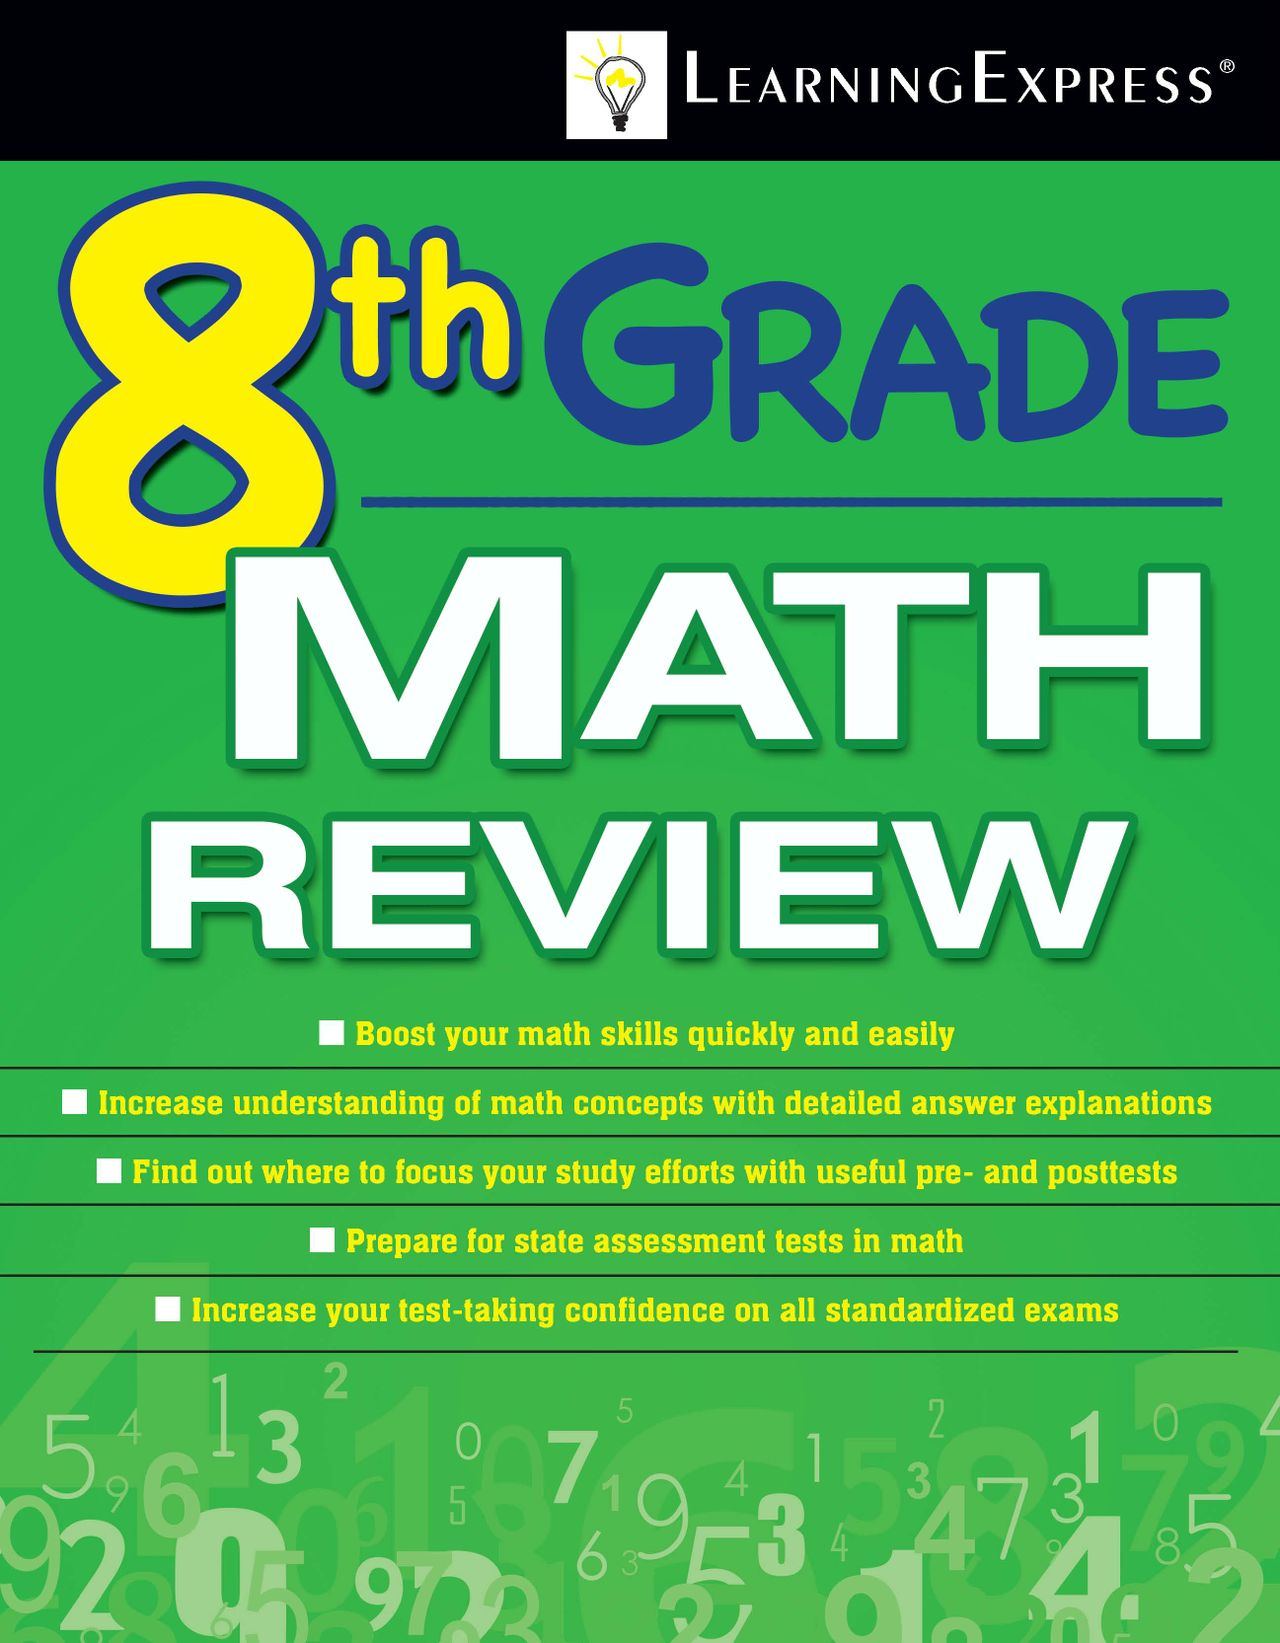 8th Grade Math Review Examville